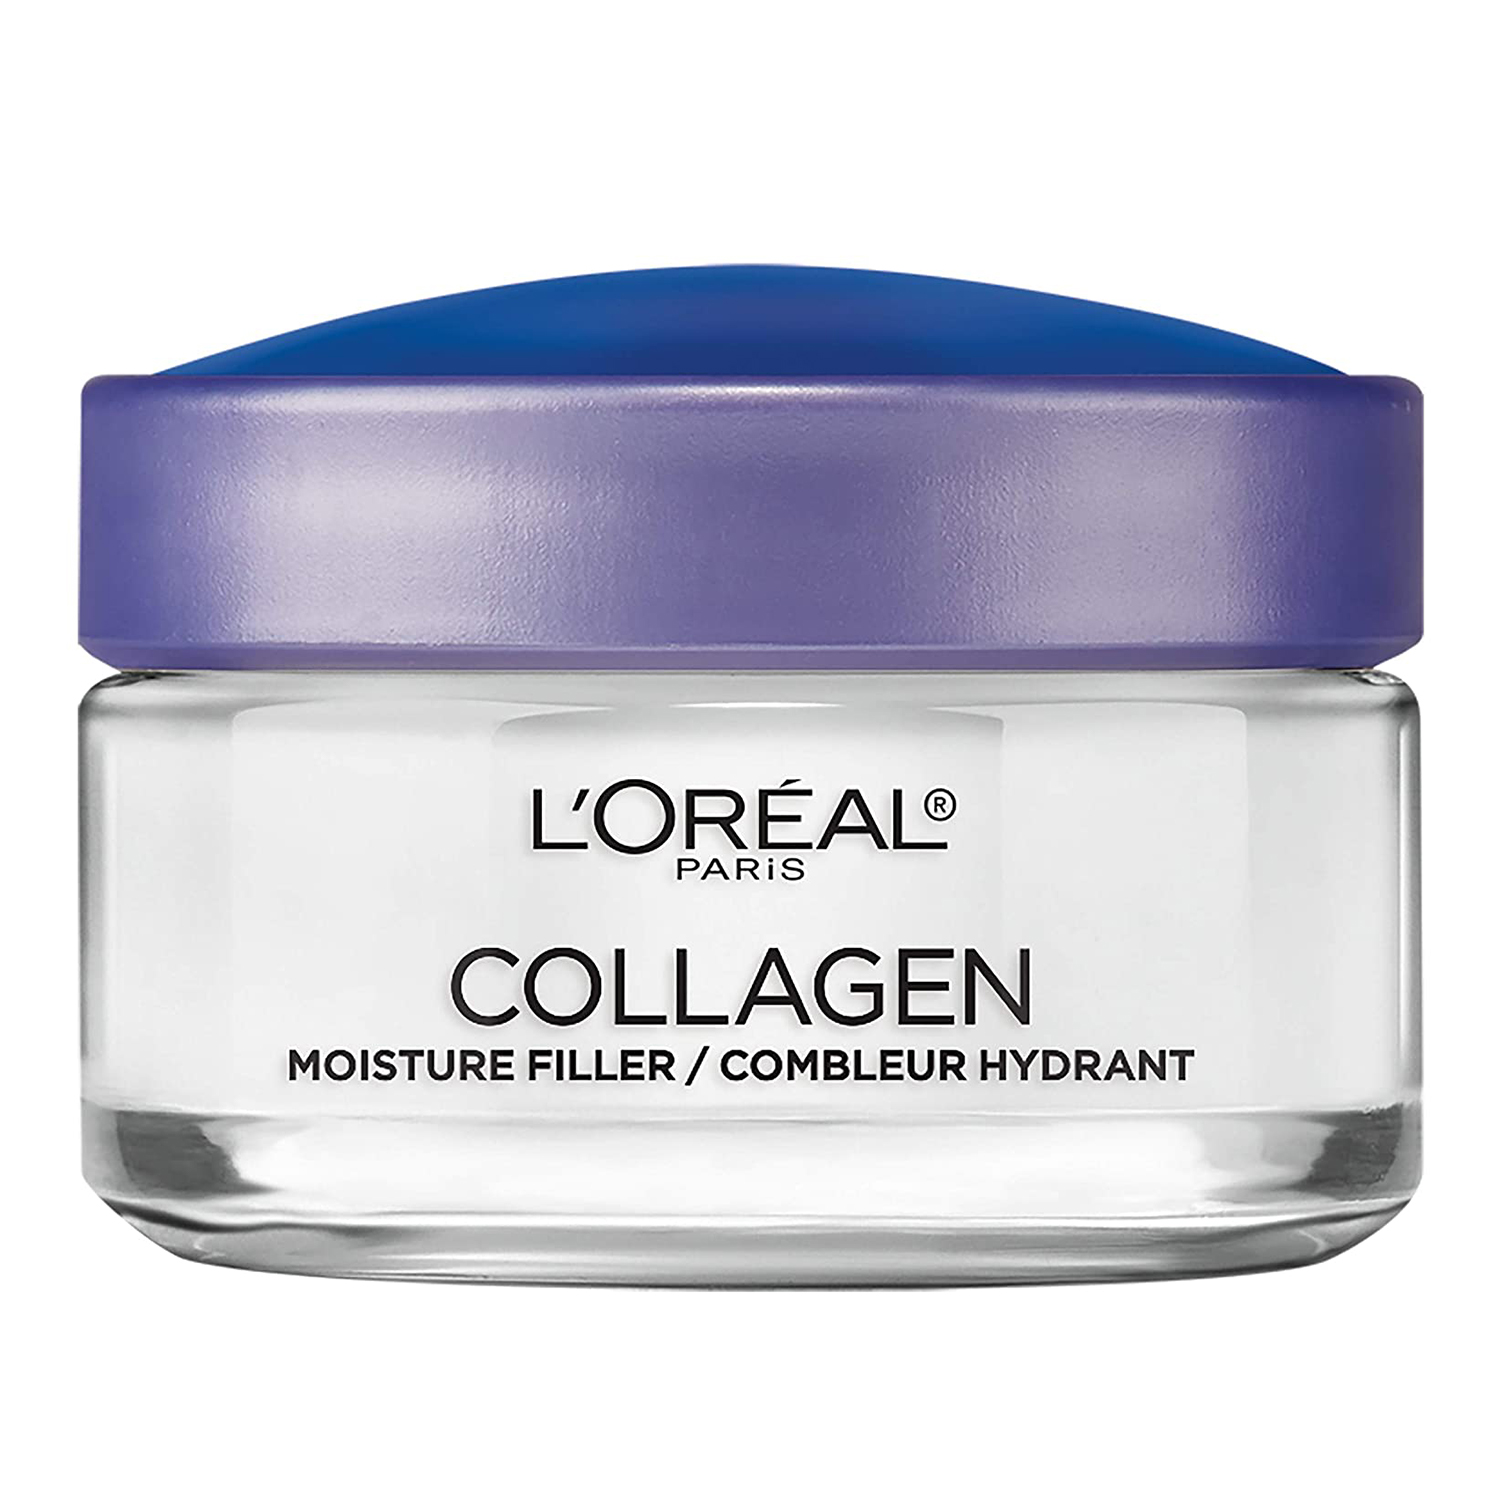 L'Oréal Paris Collagen Face Moisturizer